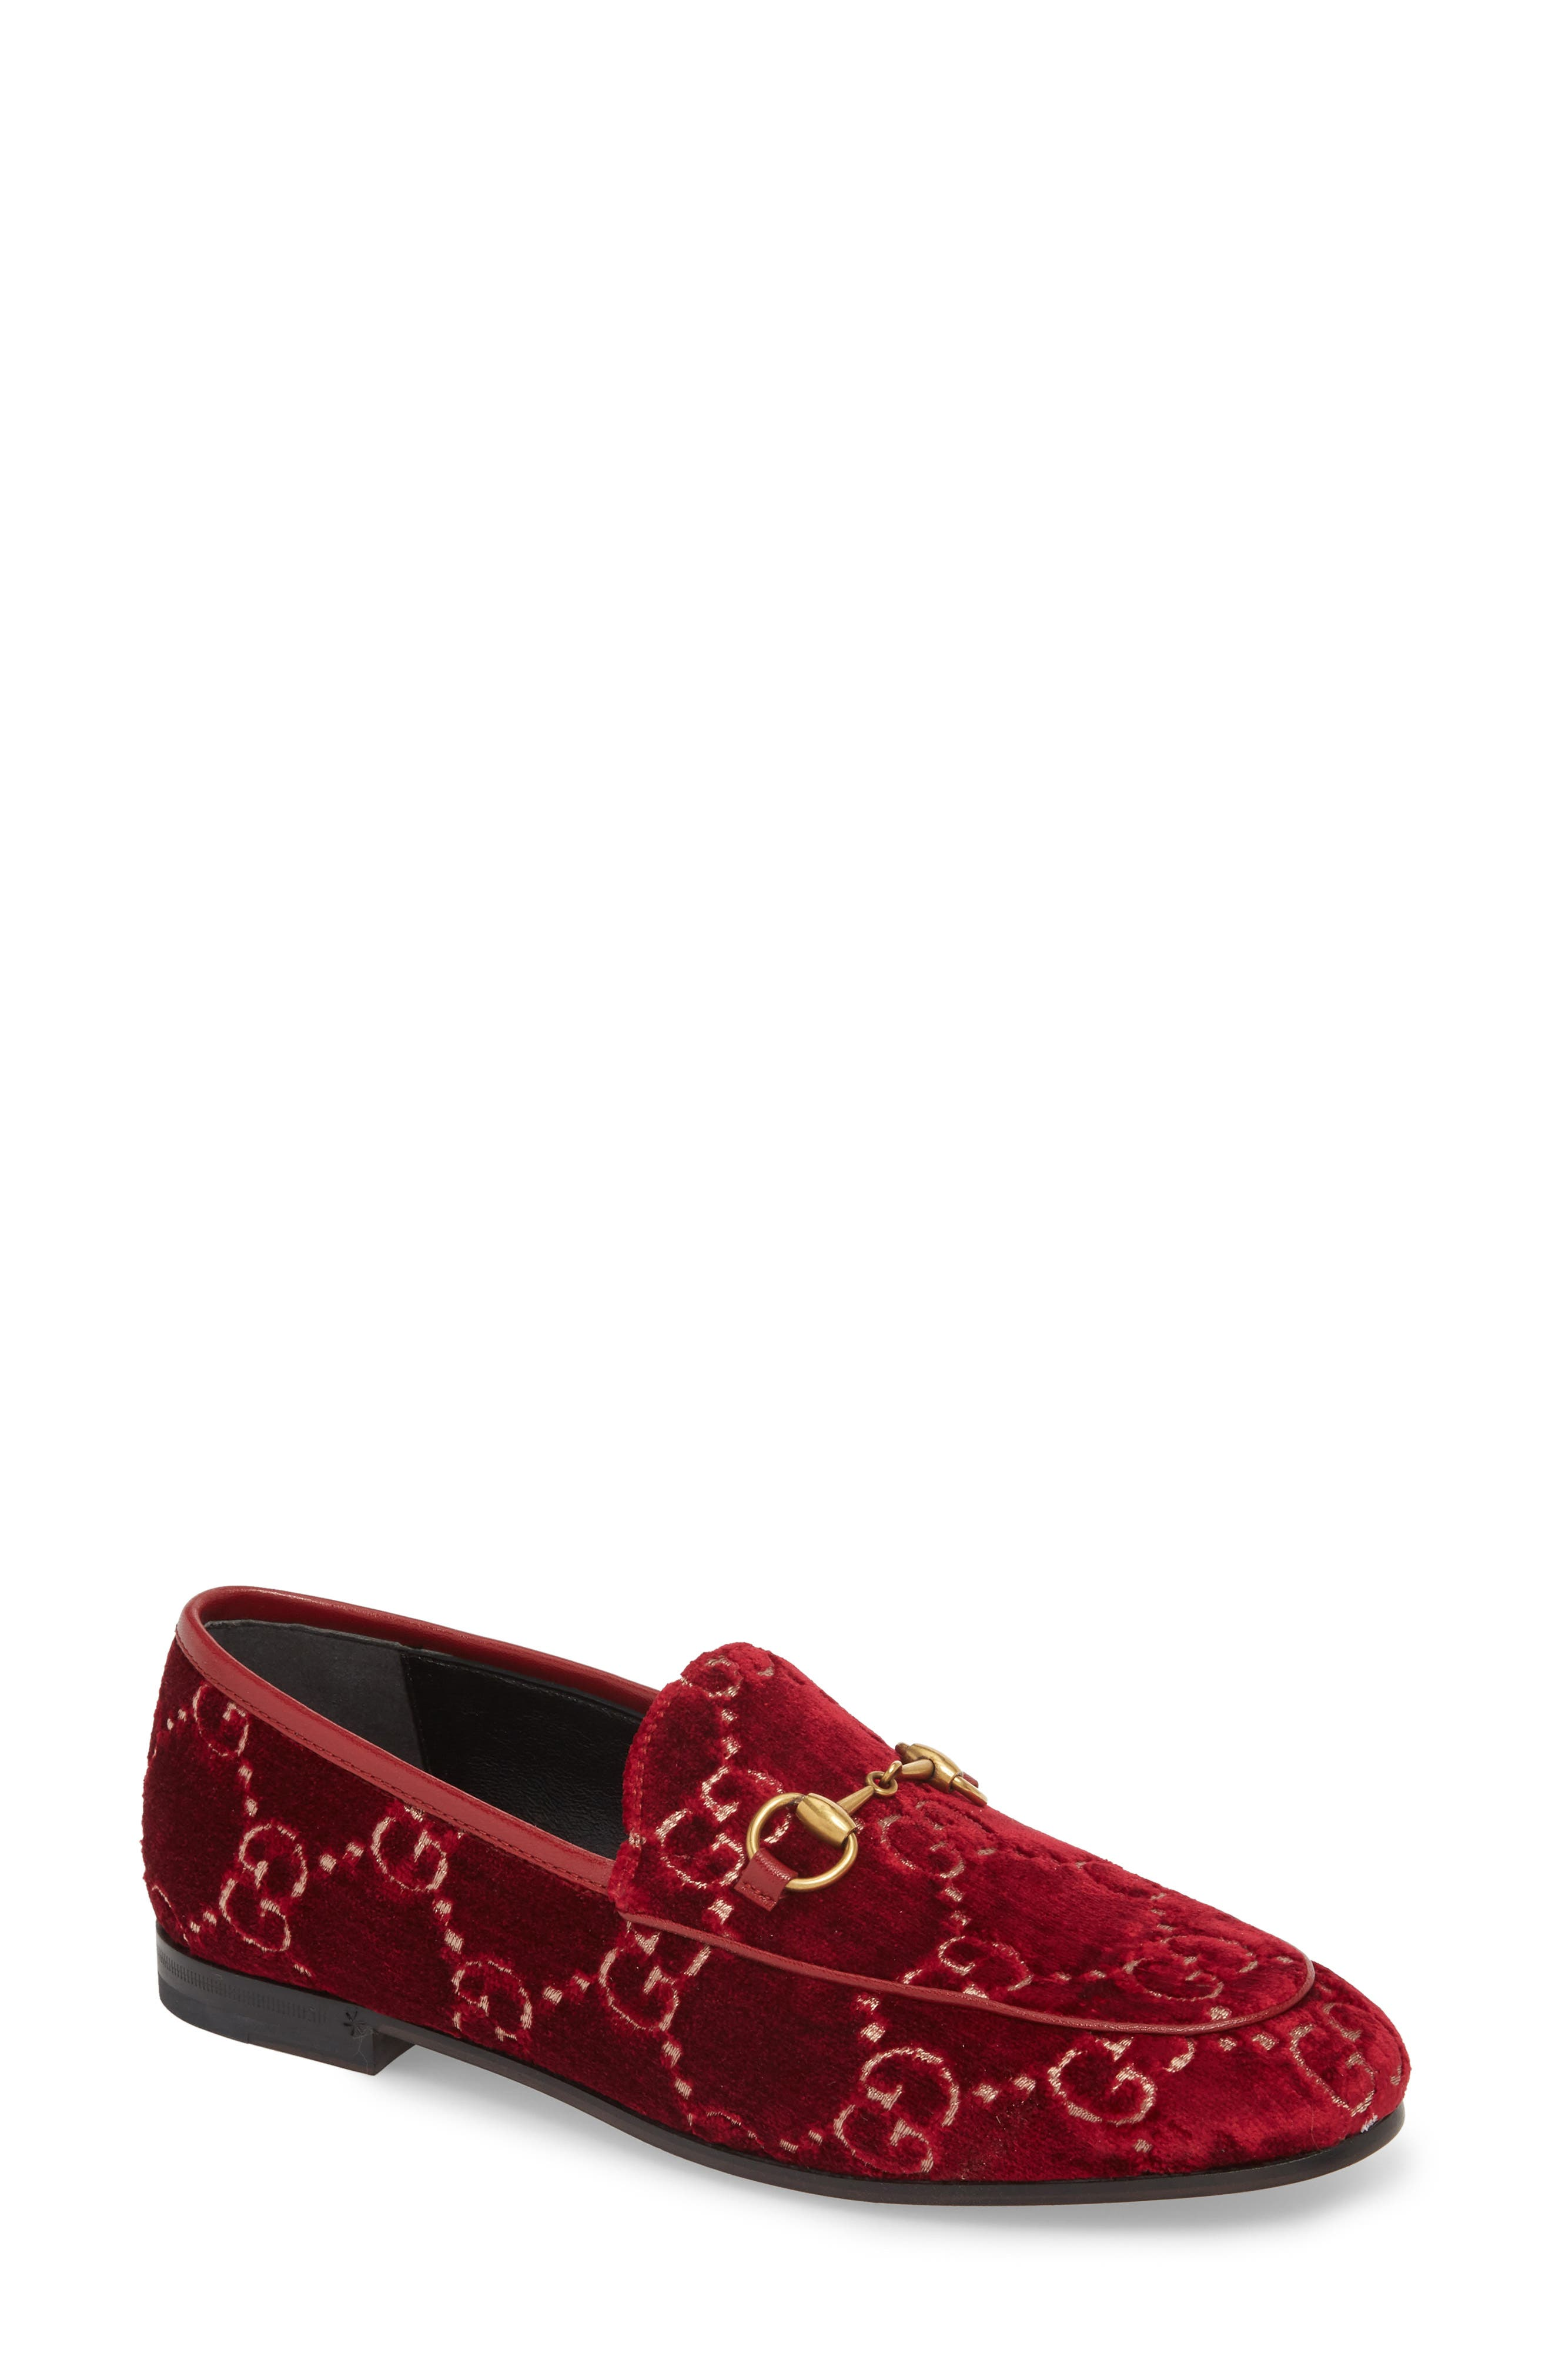 Jordaan Loafer,                             Main thumbnail 1, color,                             Red